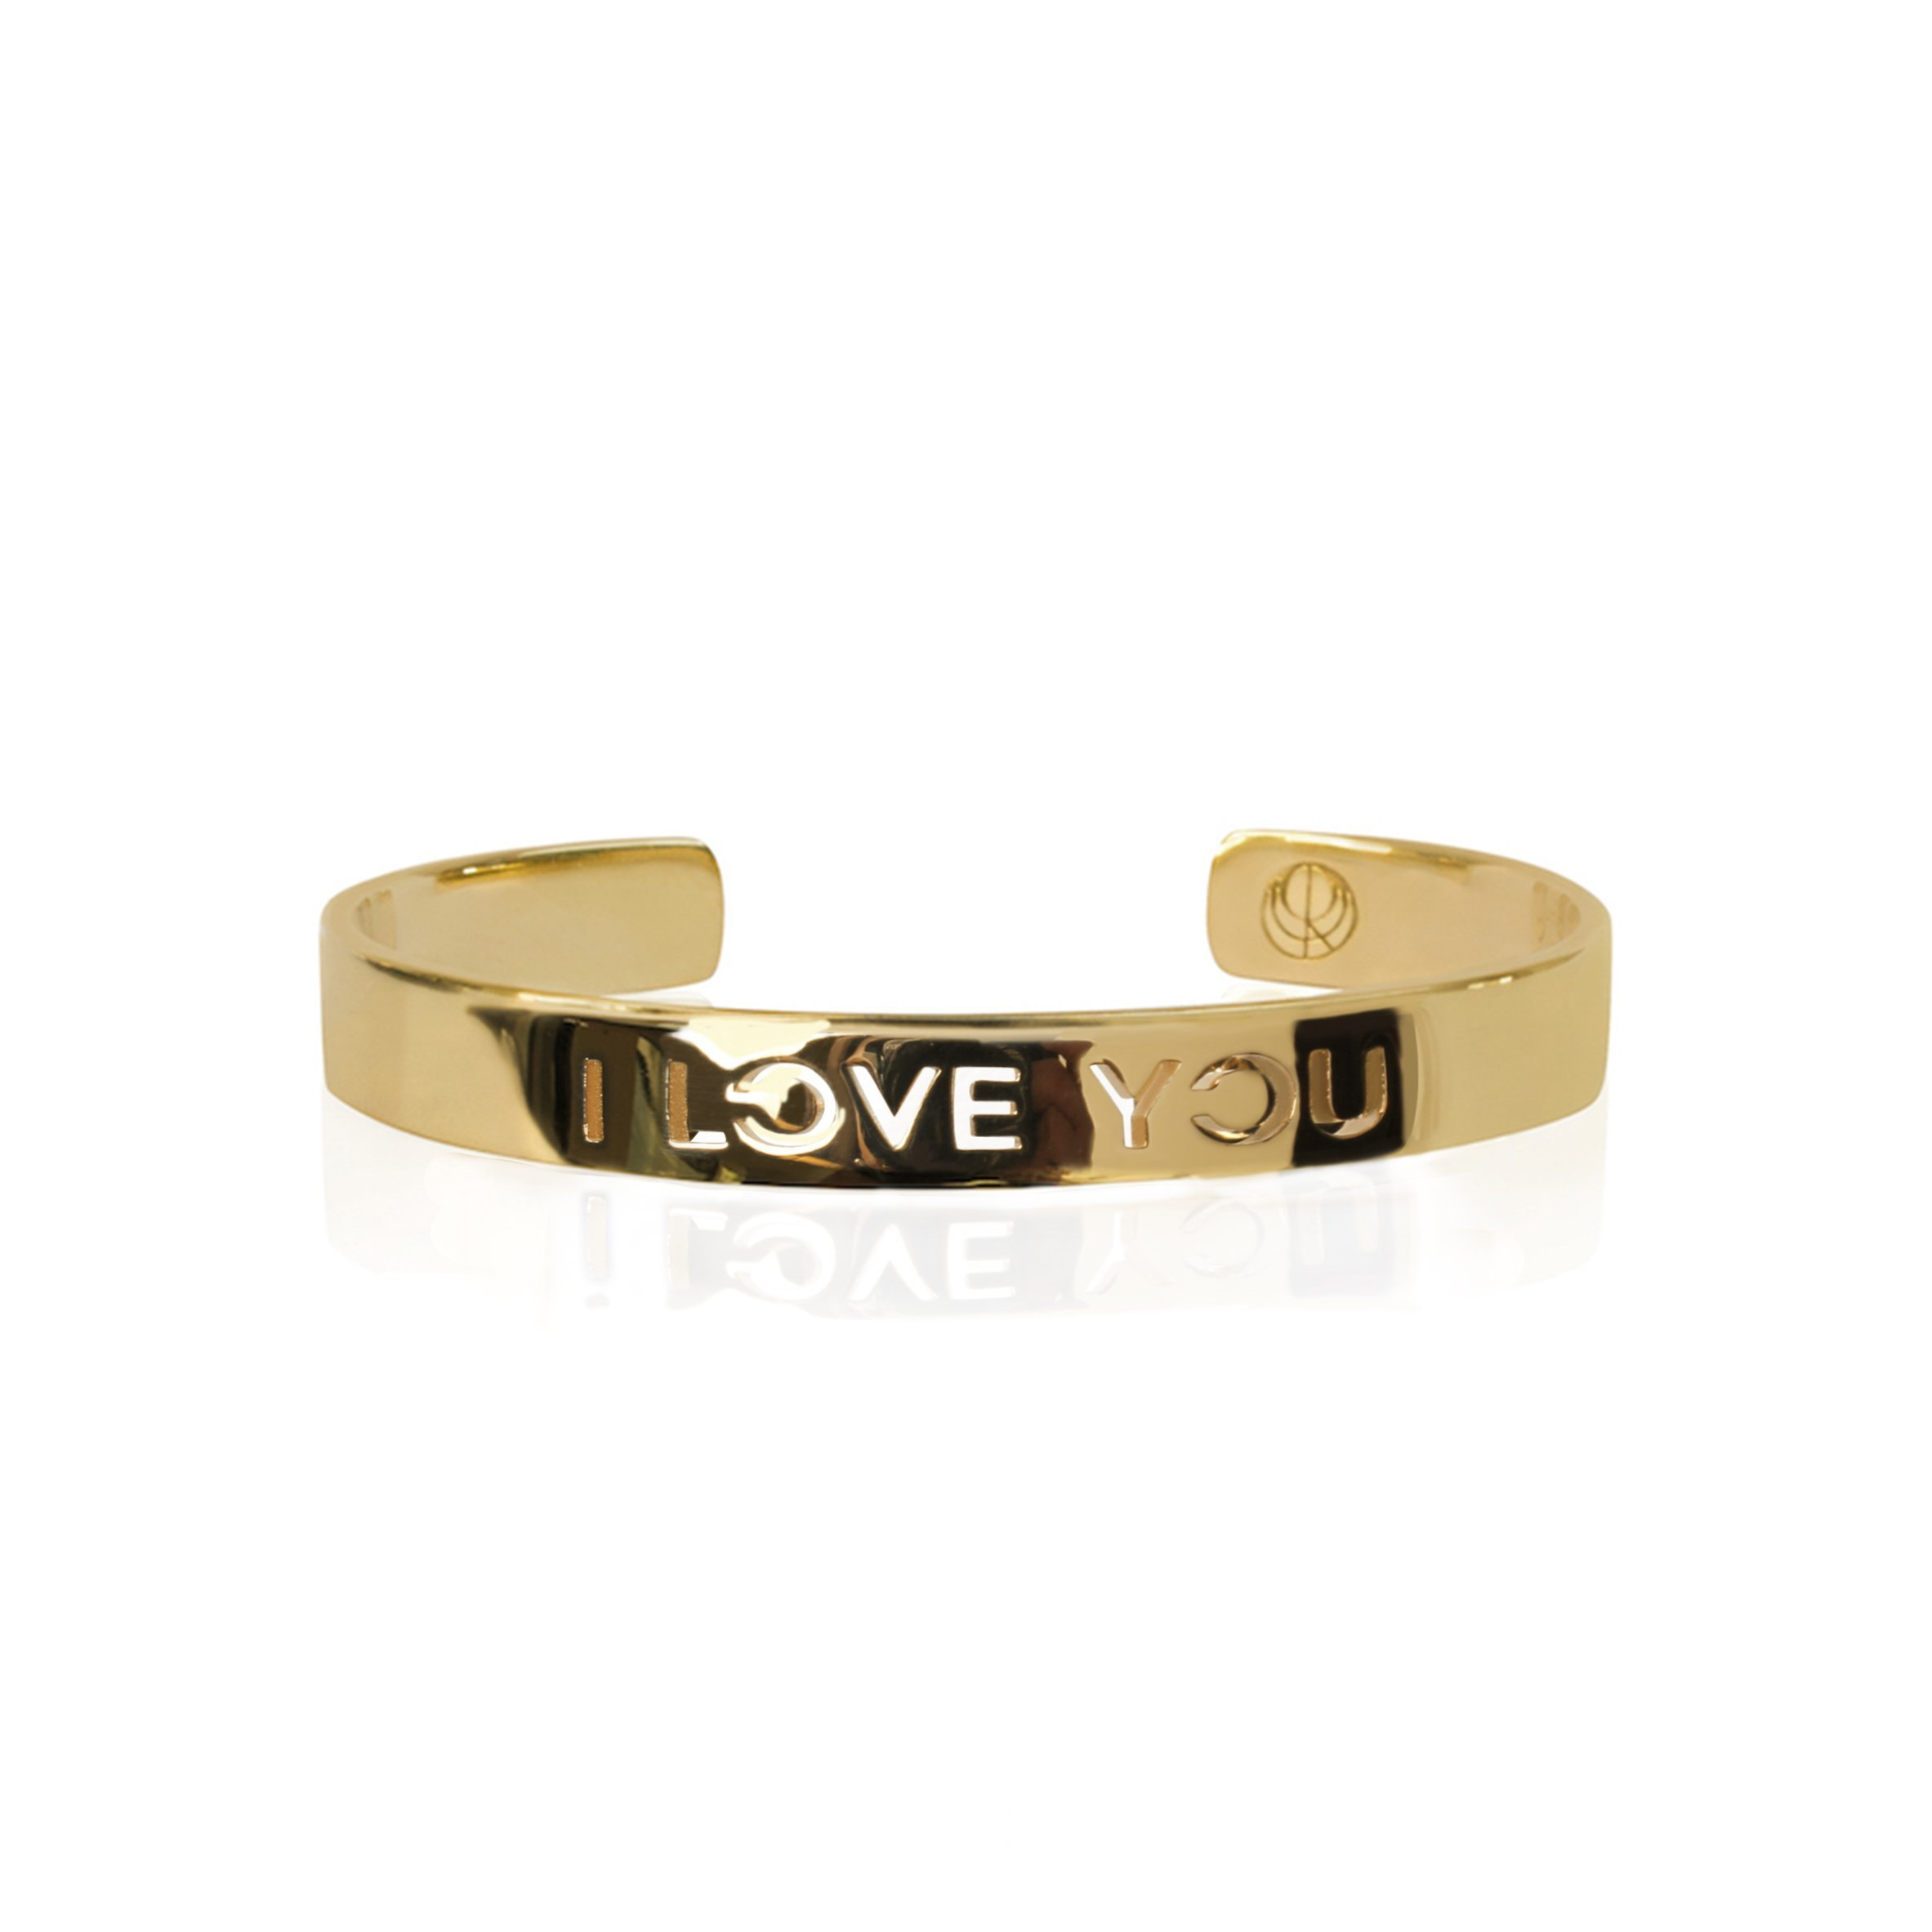 I LOVE YOU Bangle 24K Gold Plated Stainless Steel Bracelet Travel Jewelry